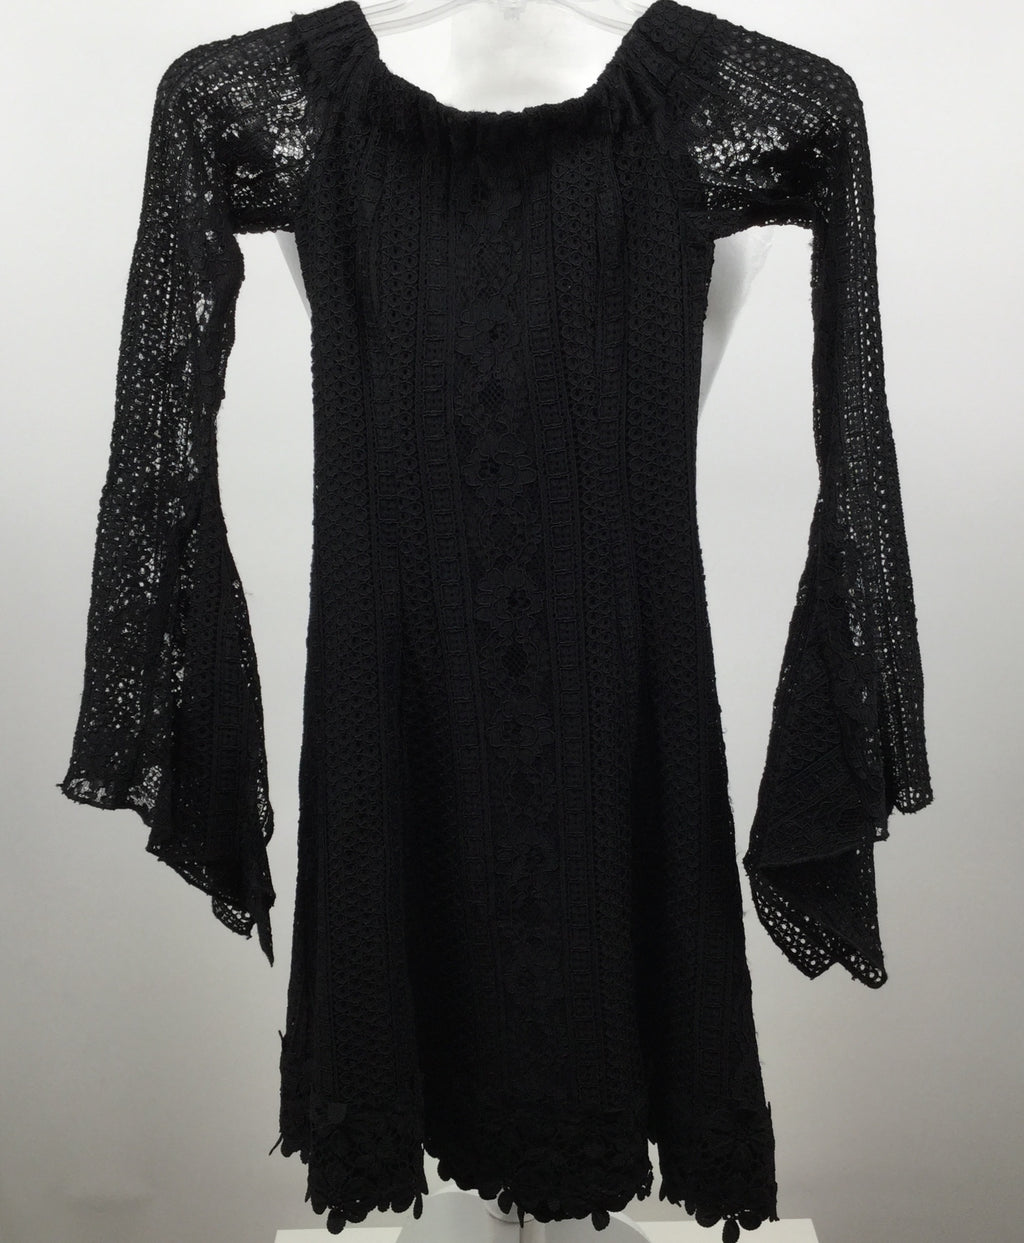 NICHOLAS SHORT LONG SLEEVE LACE DRESS, SIZE 2.